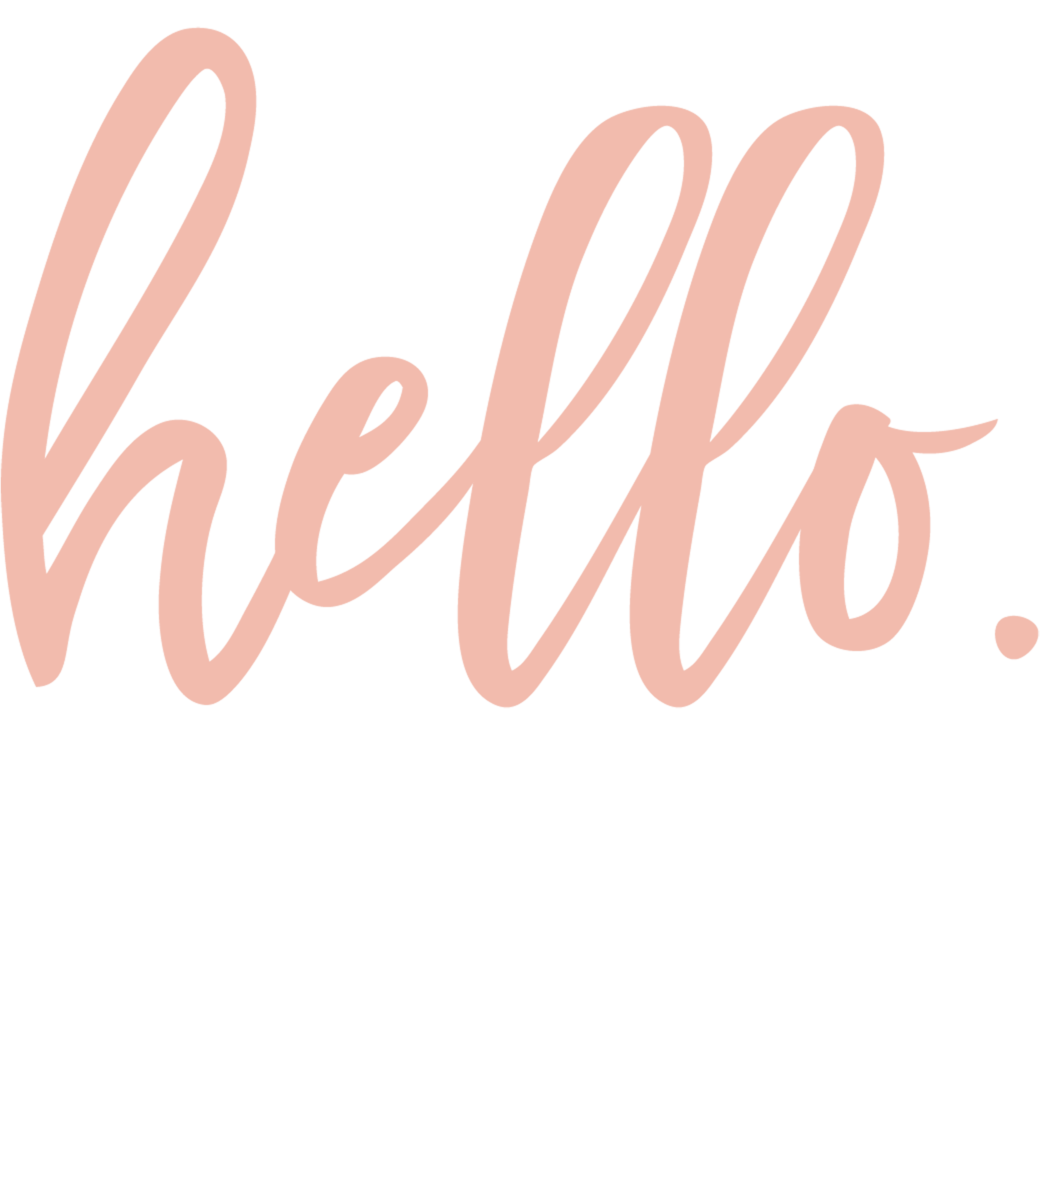 Hello transparent. Life with purpose shop